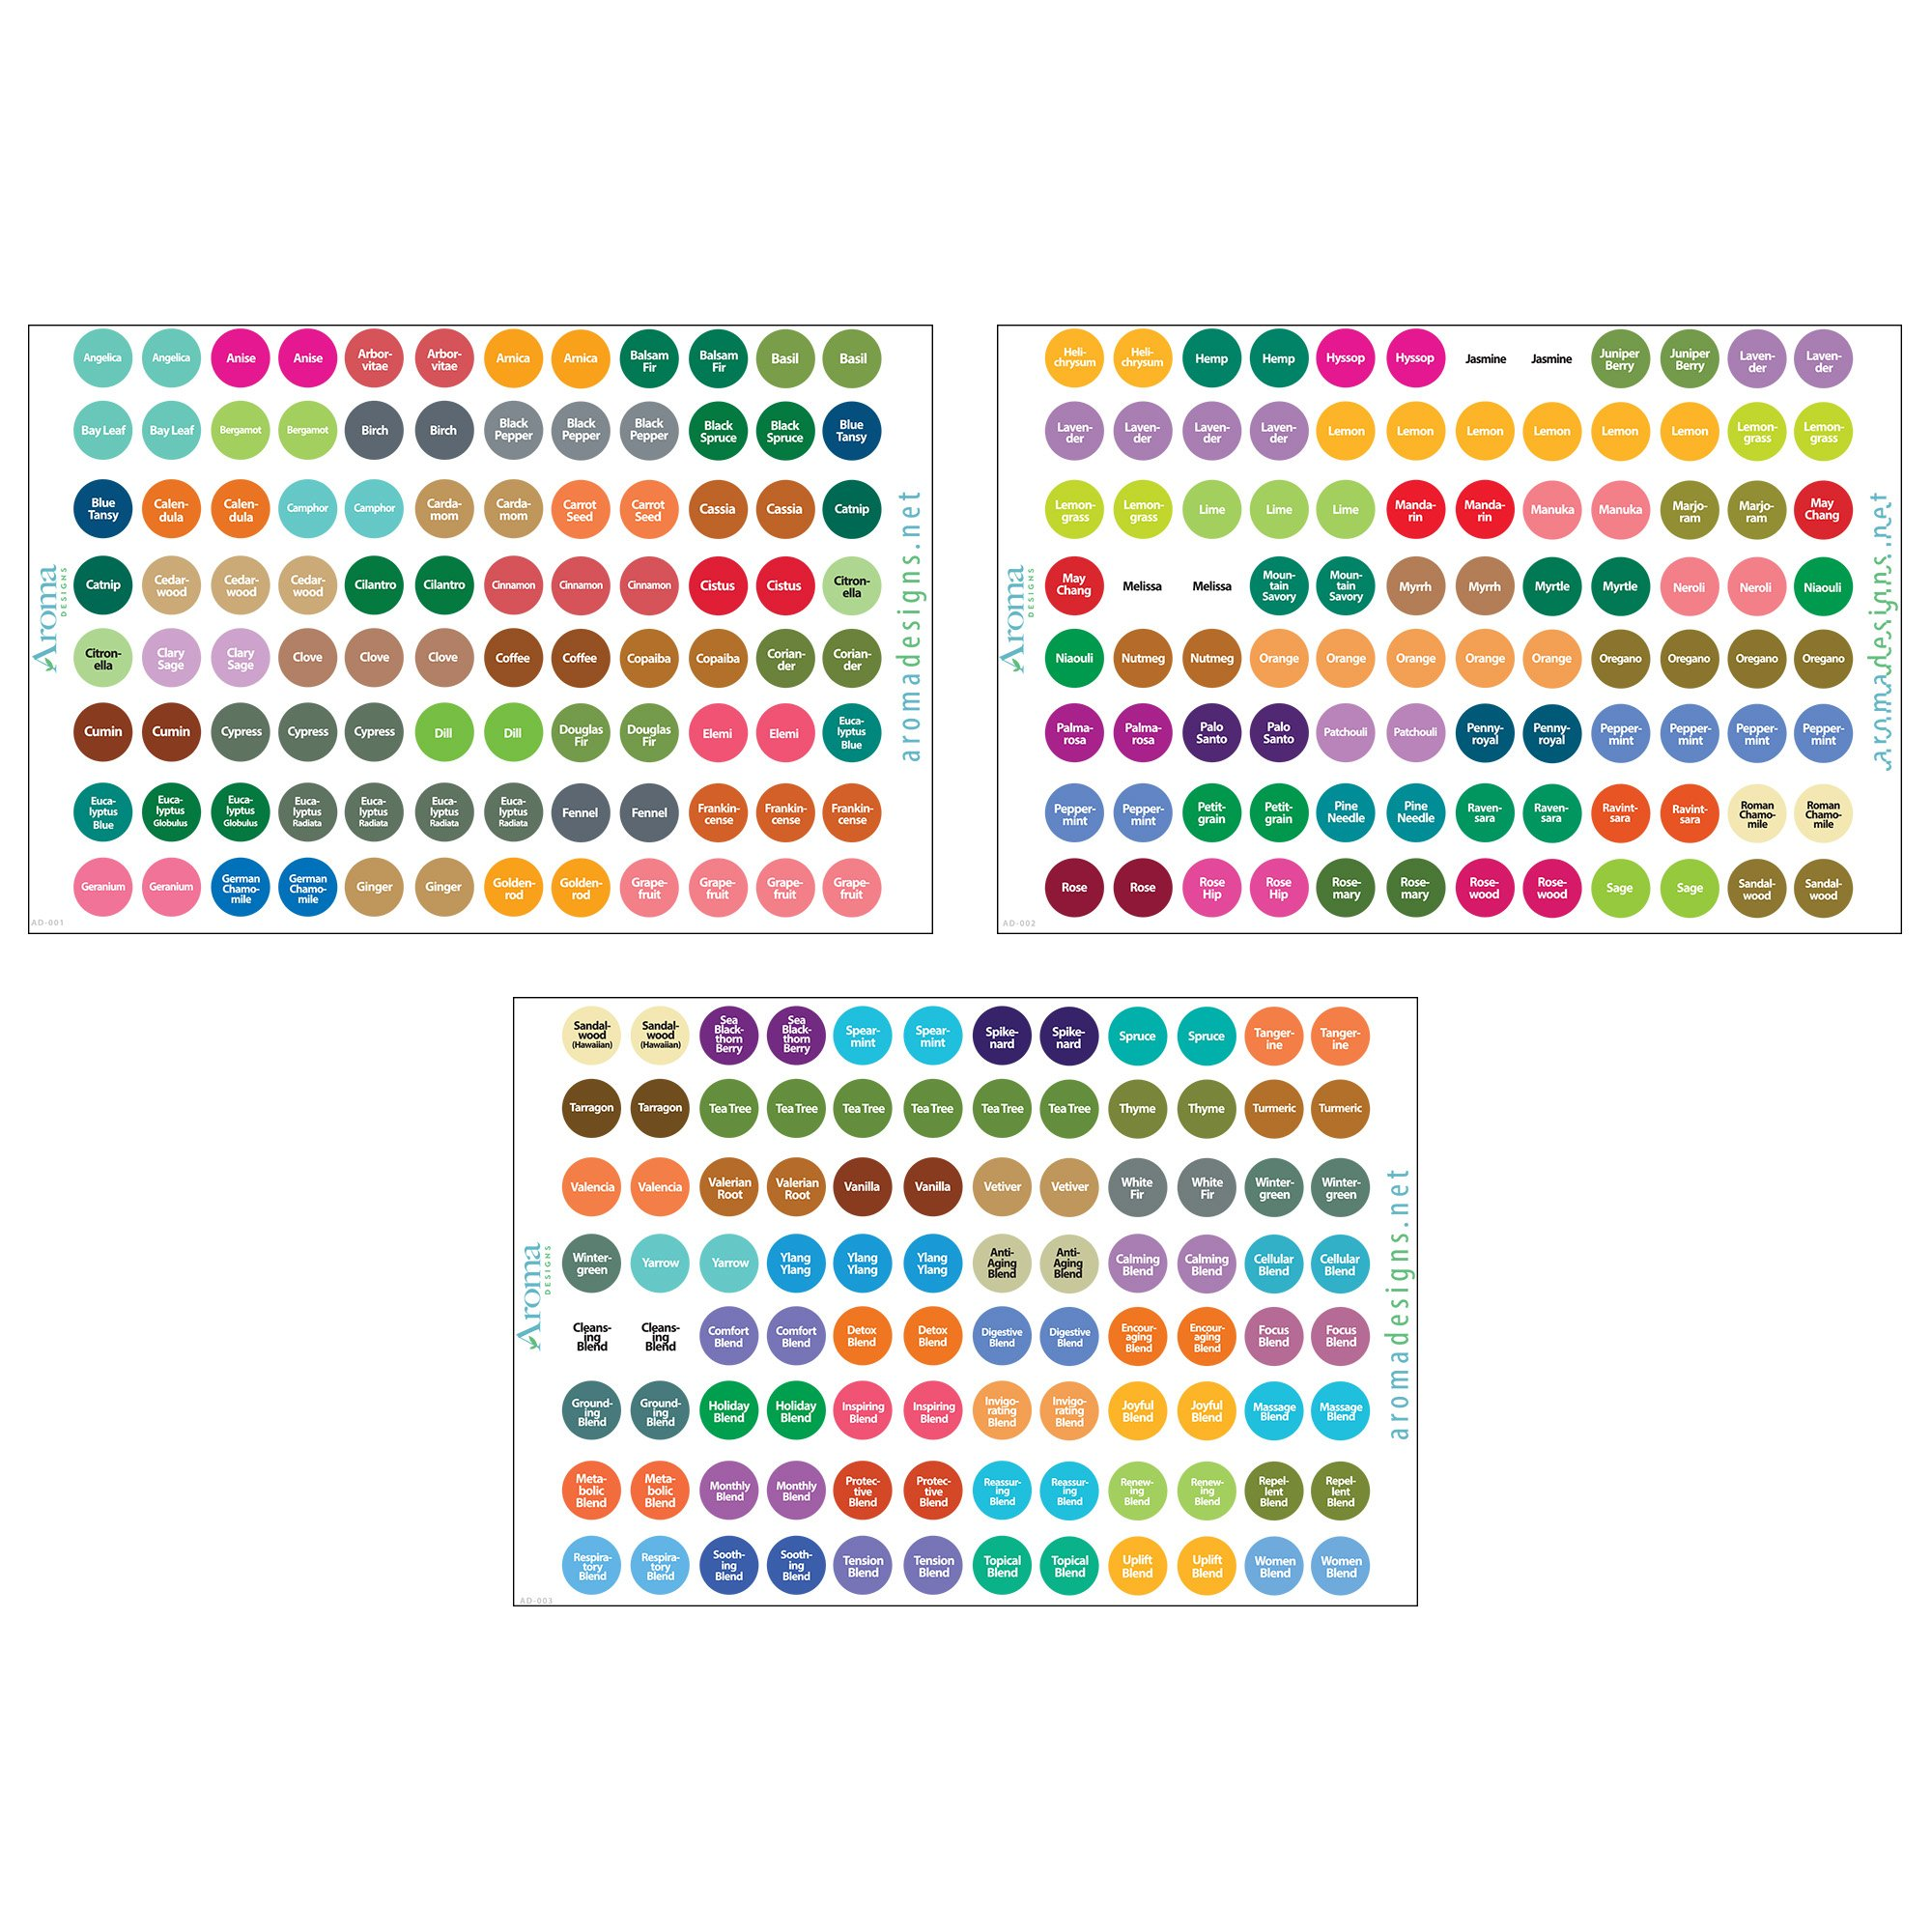 Essential Oils Labels - Complete Set - Includes Multiple Bottle Cap Stickers for ALL Oils - Perfect Lid Stickers to Keep Your Oils Organized